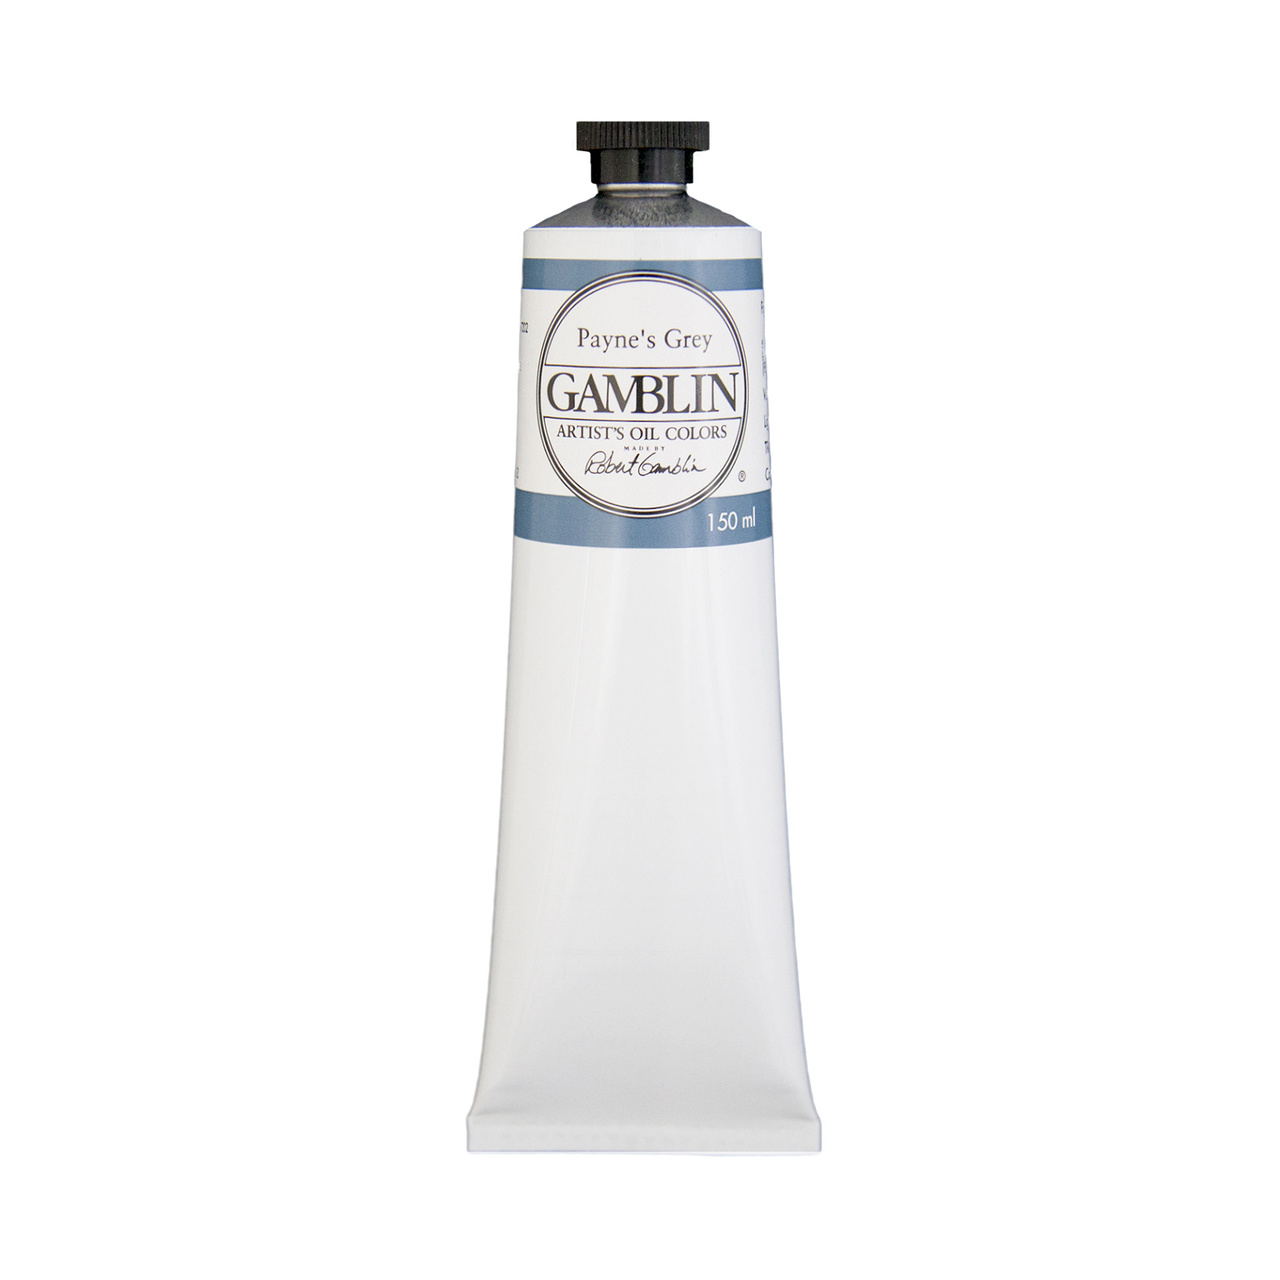 ARTIST OIL 150ML PAYNES GREY